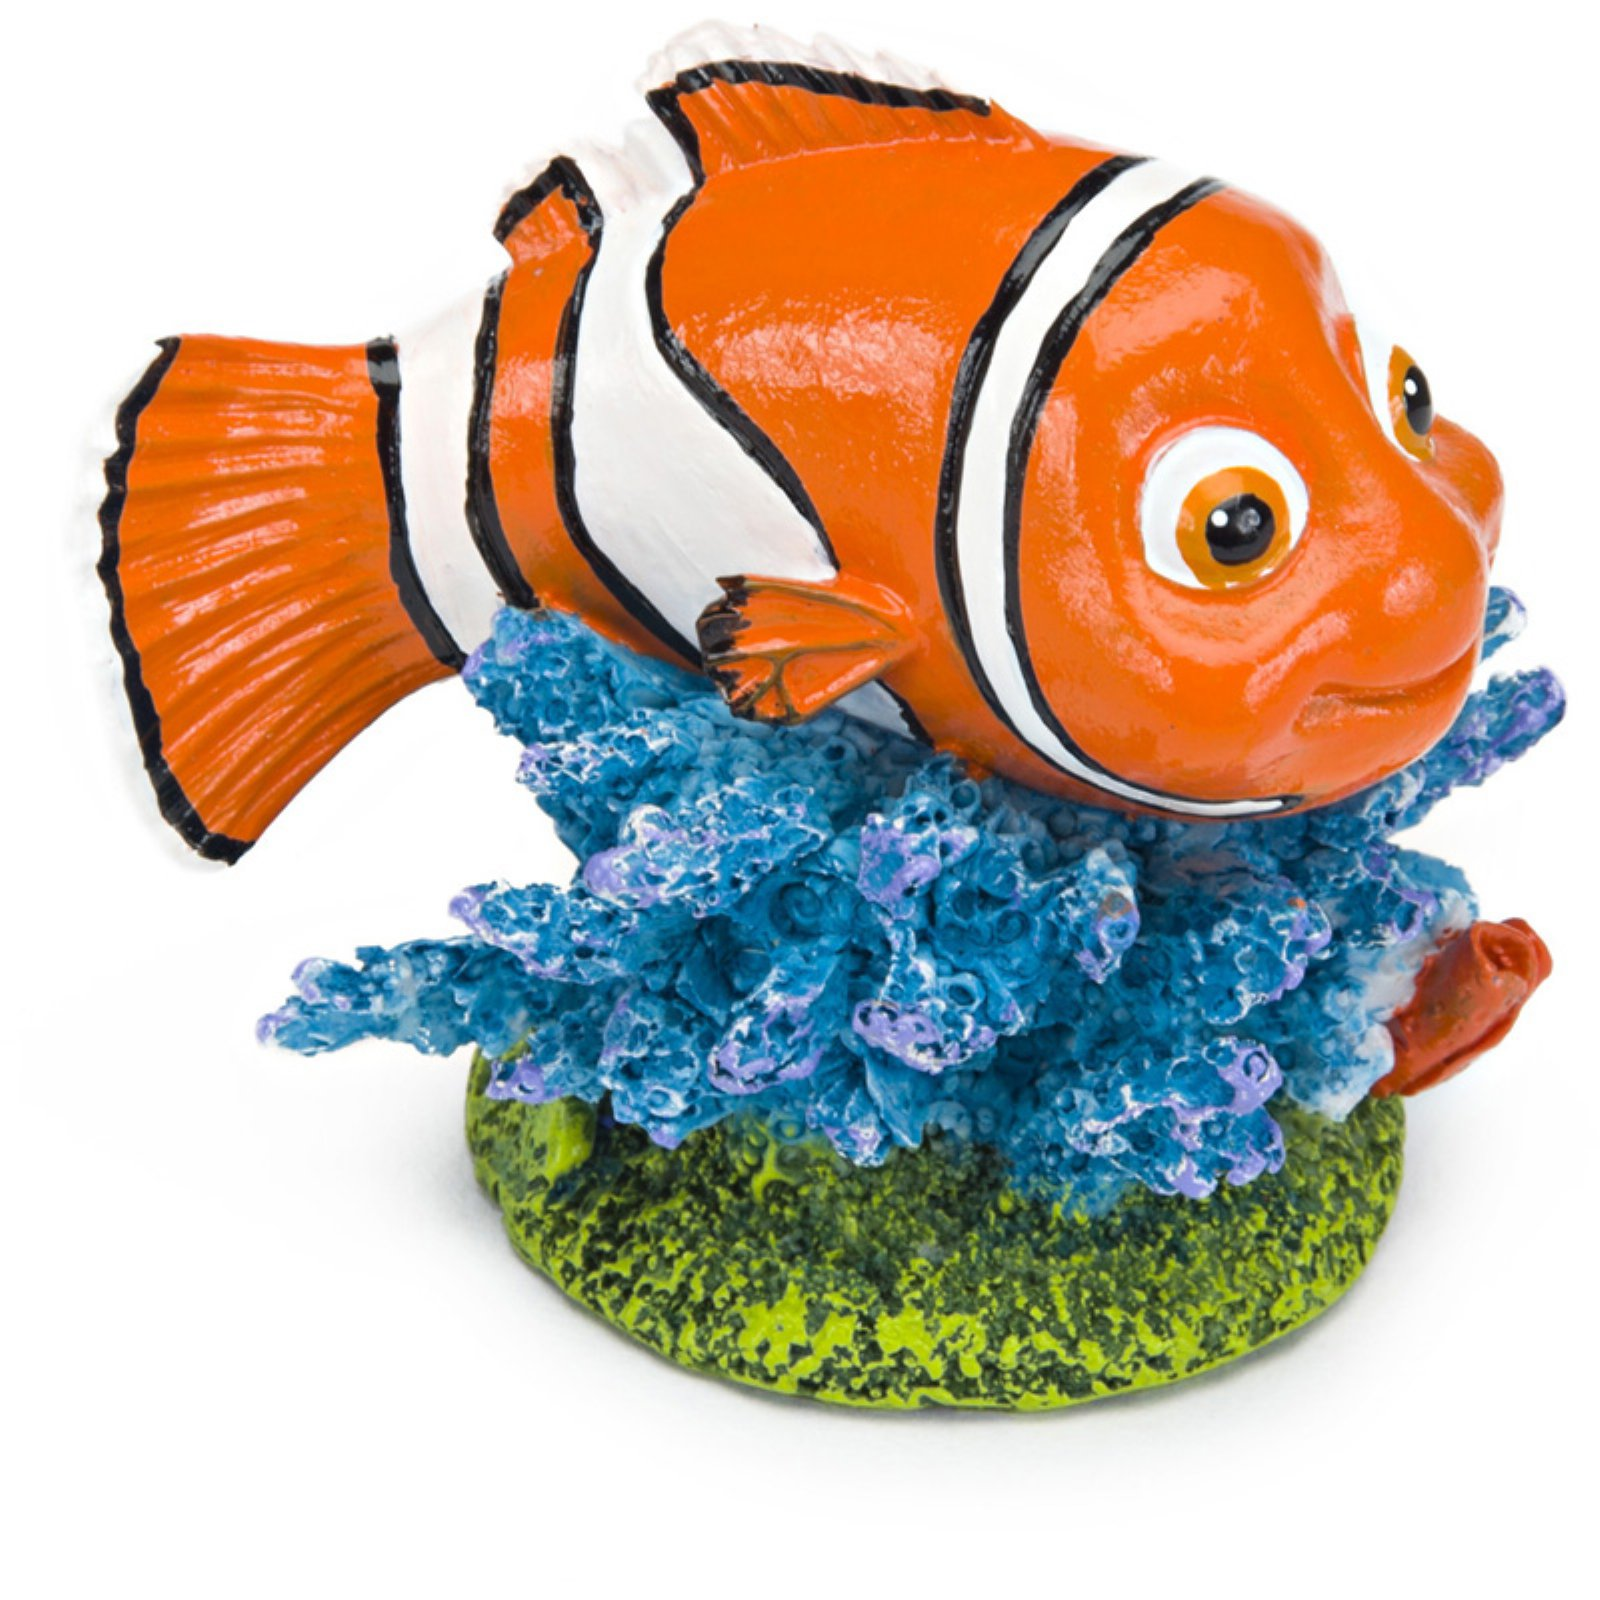 Penn Plax Finding Nemo On Coral Mini Aquarium Ornament